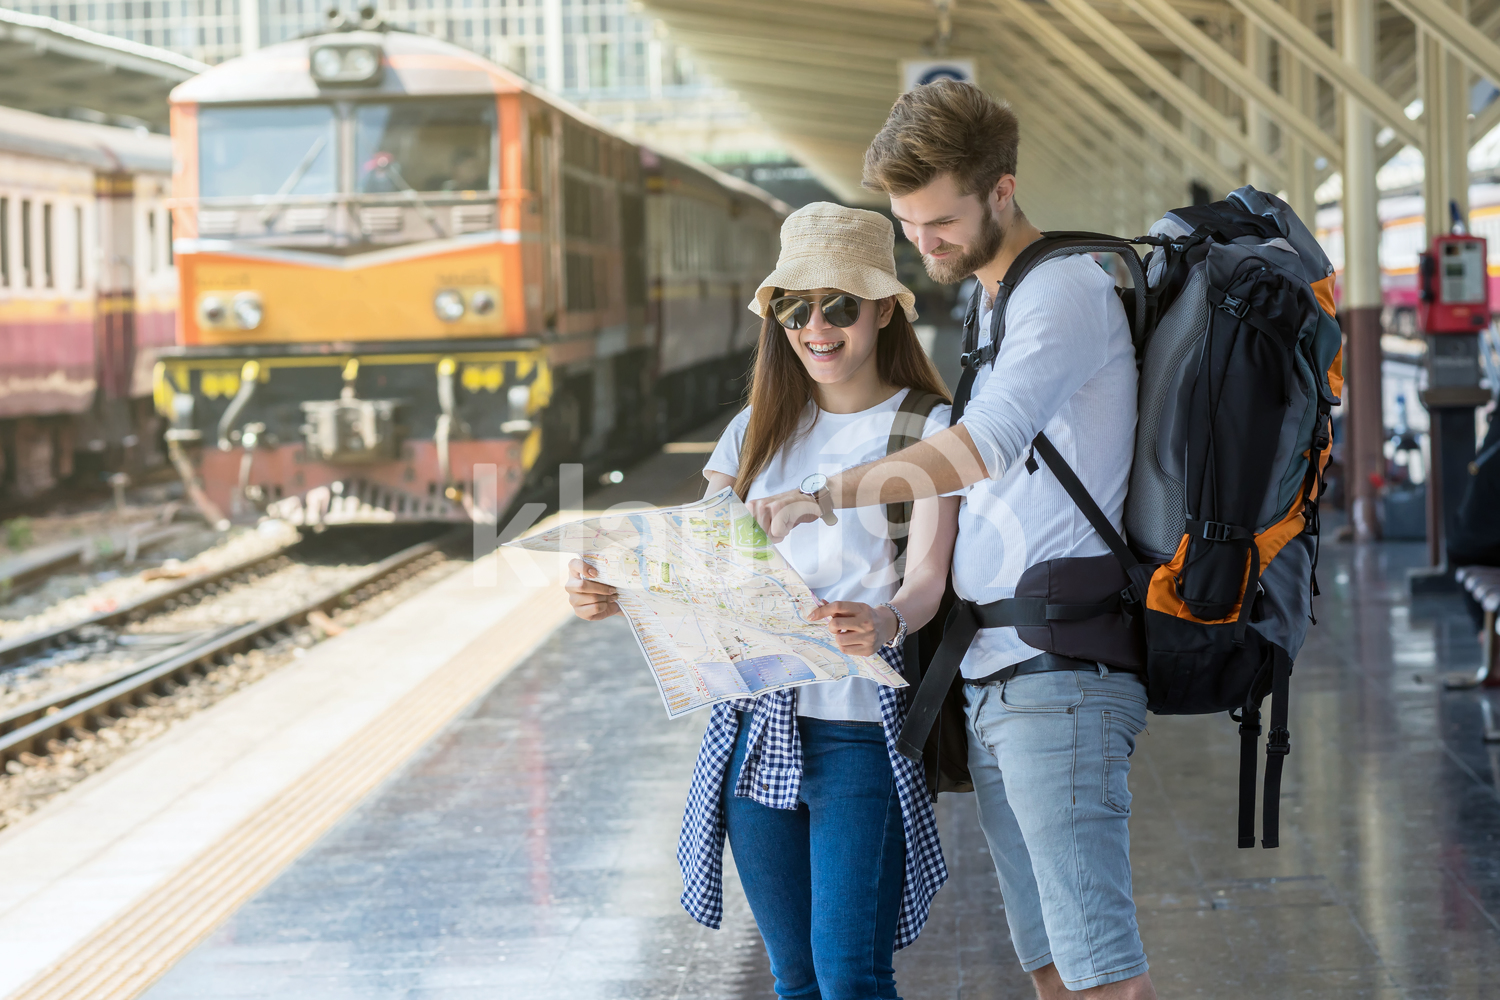 Multiethnic Travellers are looking at the map at the train station, Travel and transportation concept